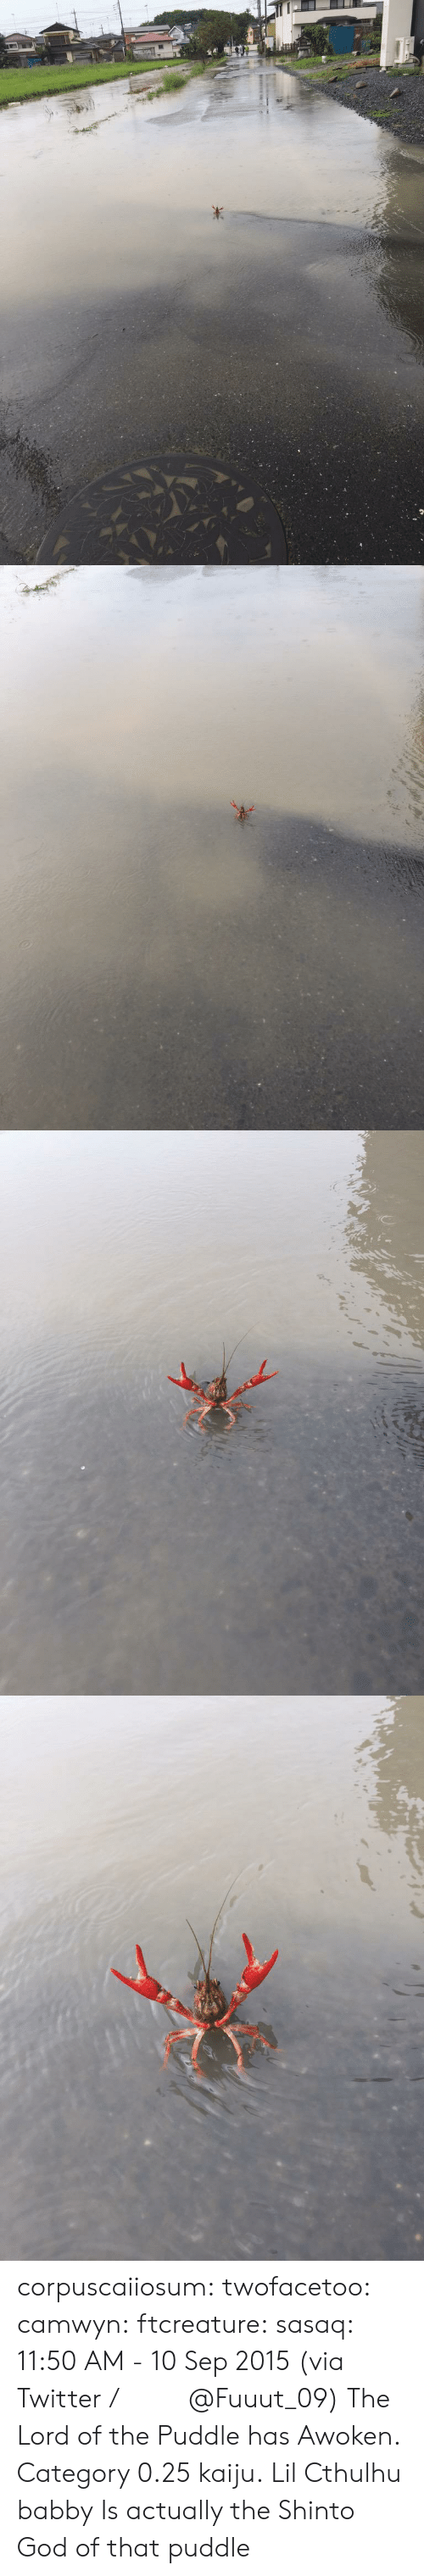 kaiju: corpuscaiiosum: twofacetoo:   camwyn:  ftcreature:  sasaq:  11:50 AM - 10 Sep 2015 (via Twitter / ふ み な @Fuuut_09)   The Lord of the Puddle has Awoken.  Category 0.25 kaiju.  Lil Cthulhu babby   Is actually the Shinto God of that puddle